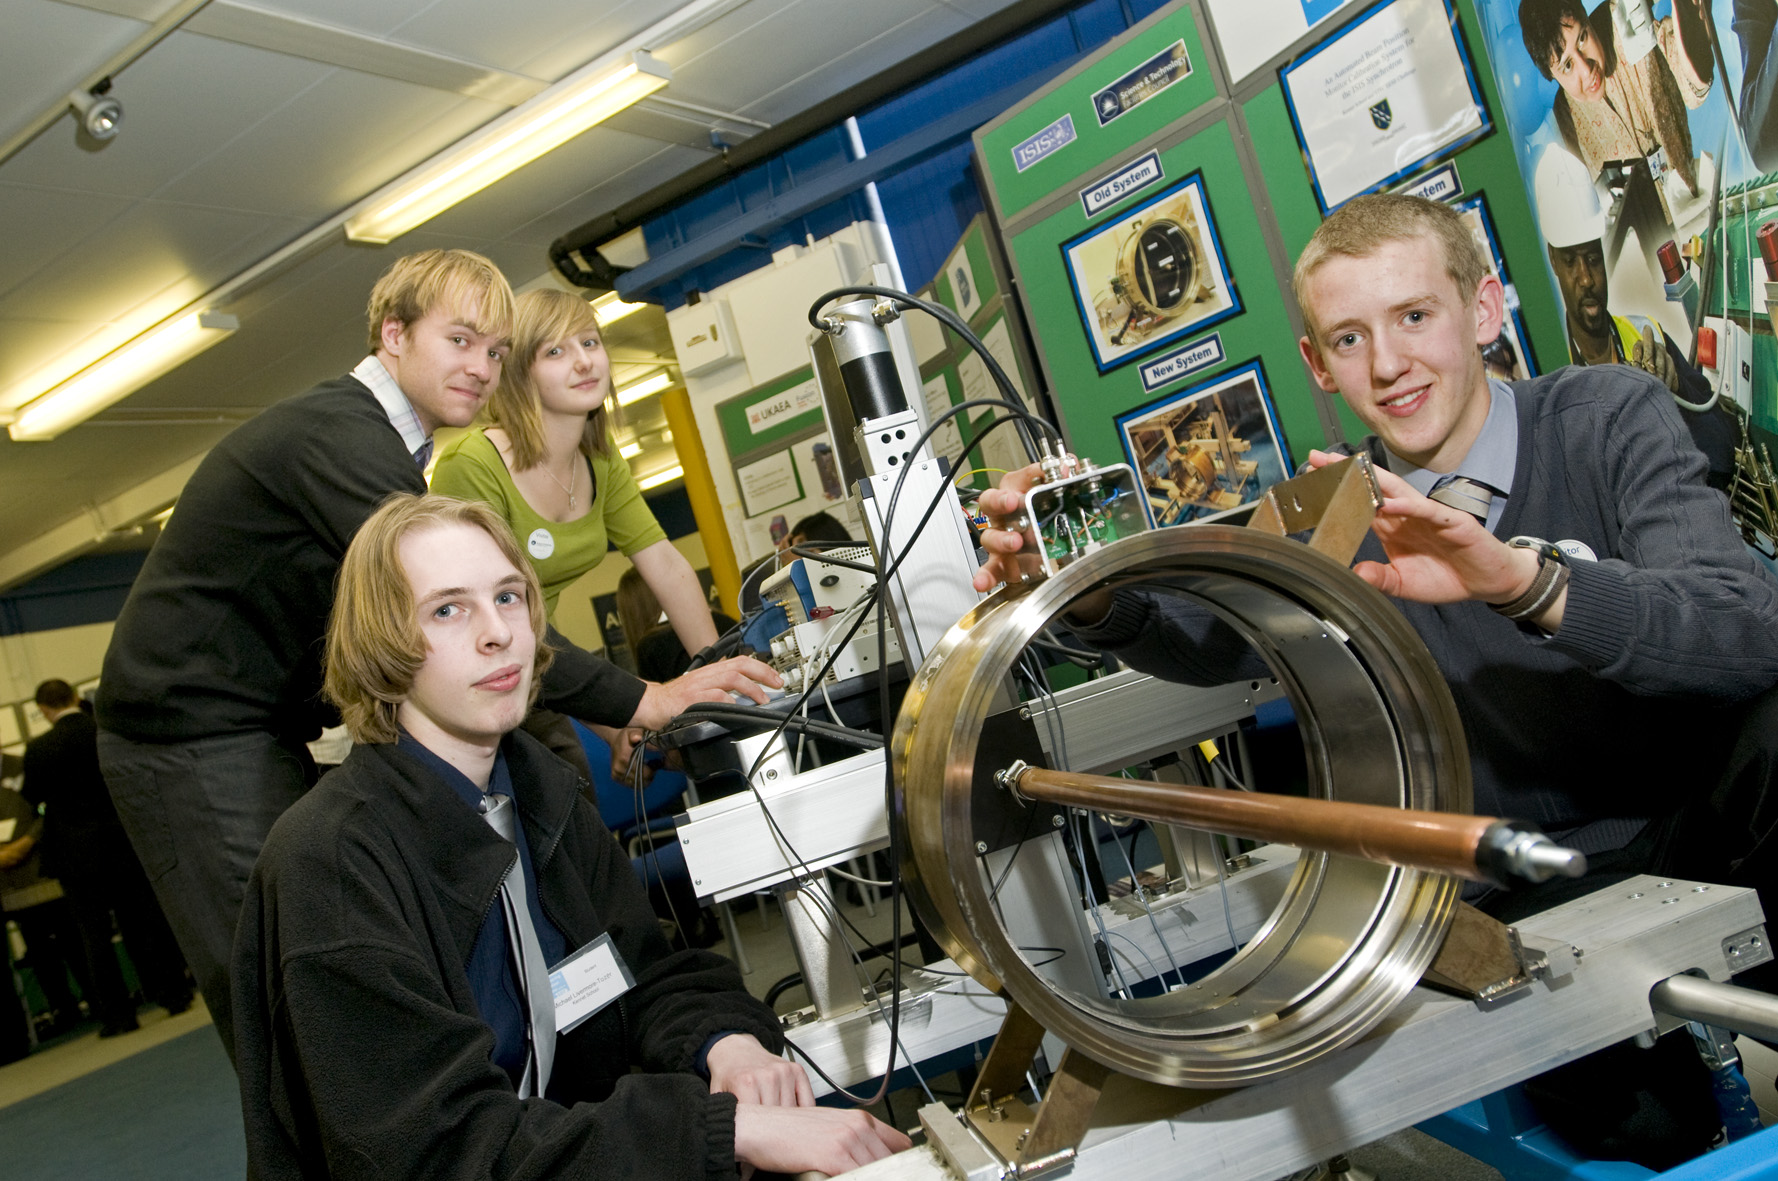 Applications now open for the iet engineering education grant.